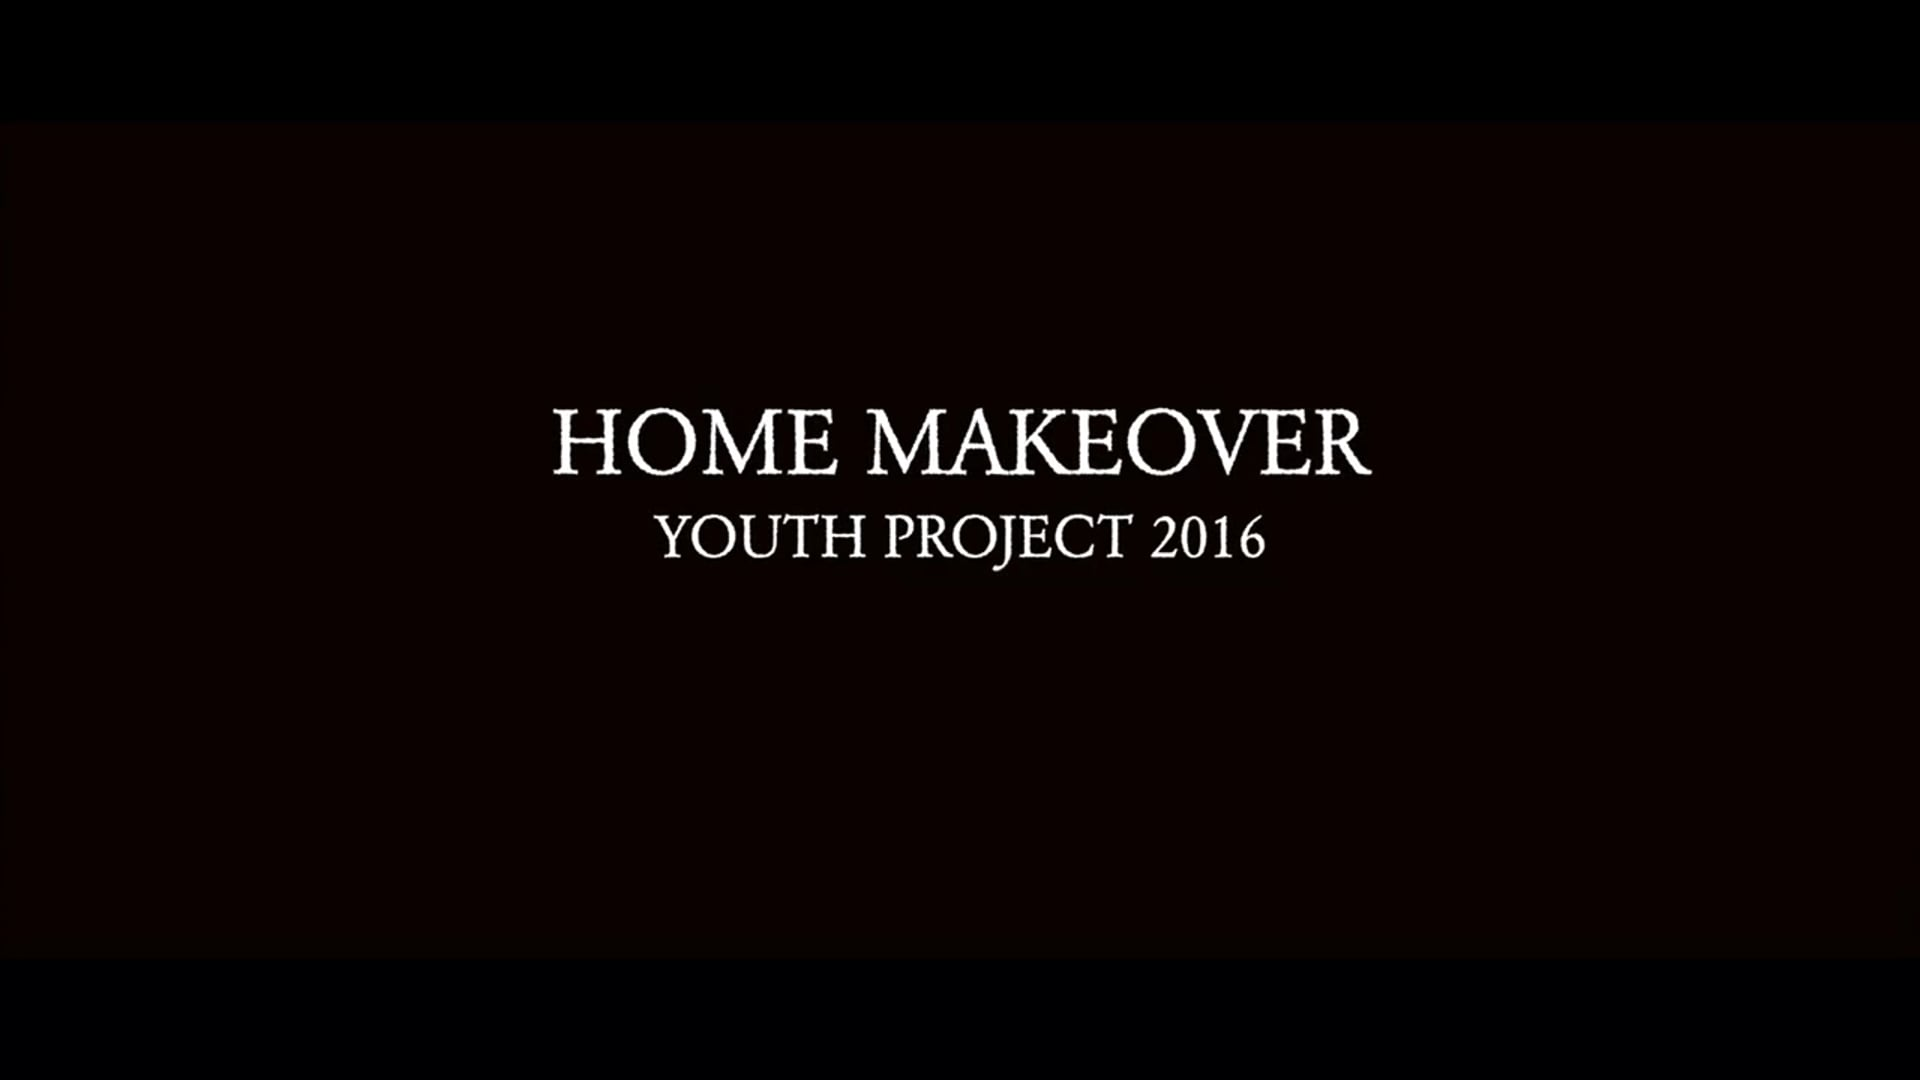 Home Makeover Youth Project 2016